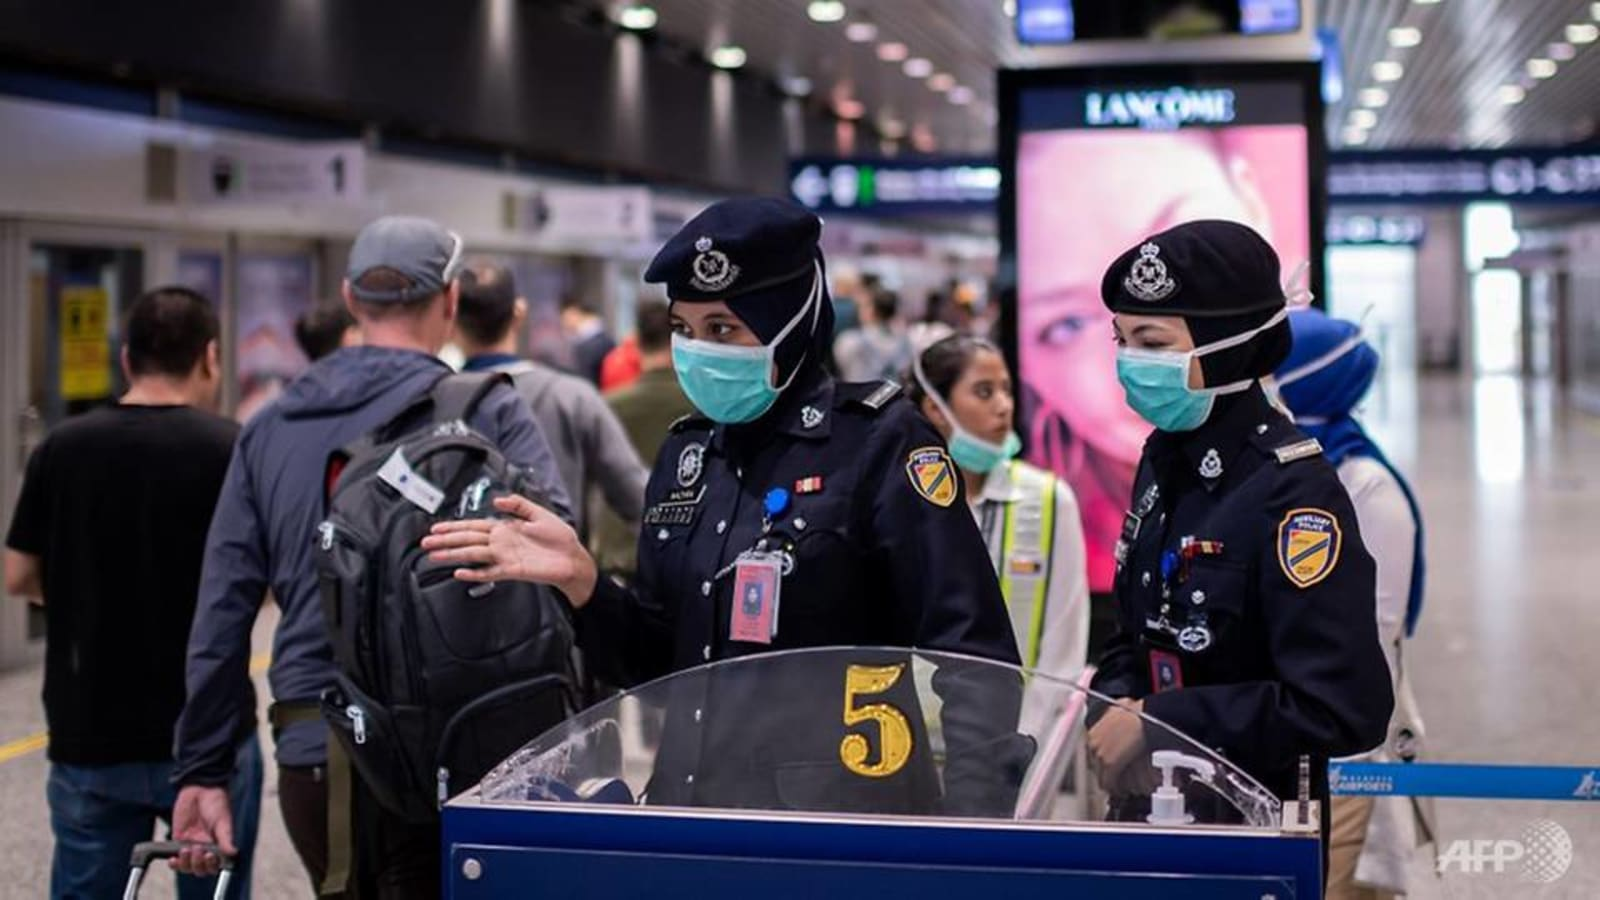 Vaccinated travellers arriving in Malaysia can apply for COVID-19 home quarantine via new portal